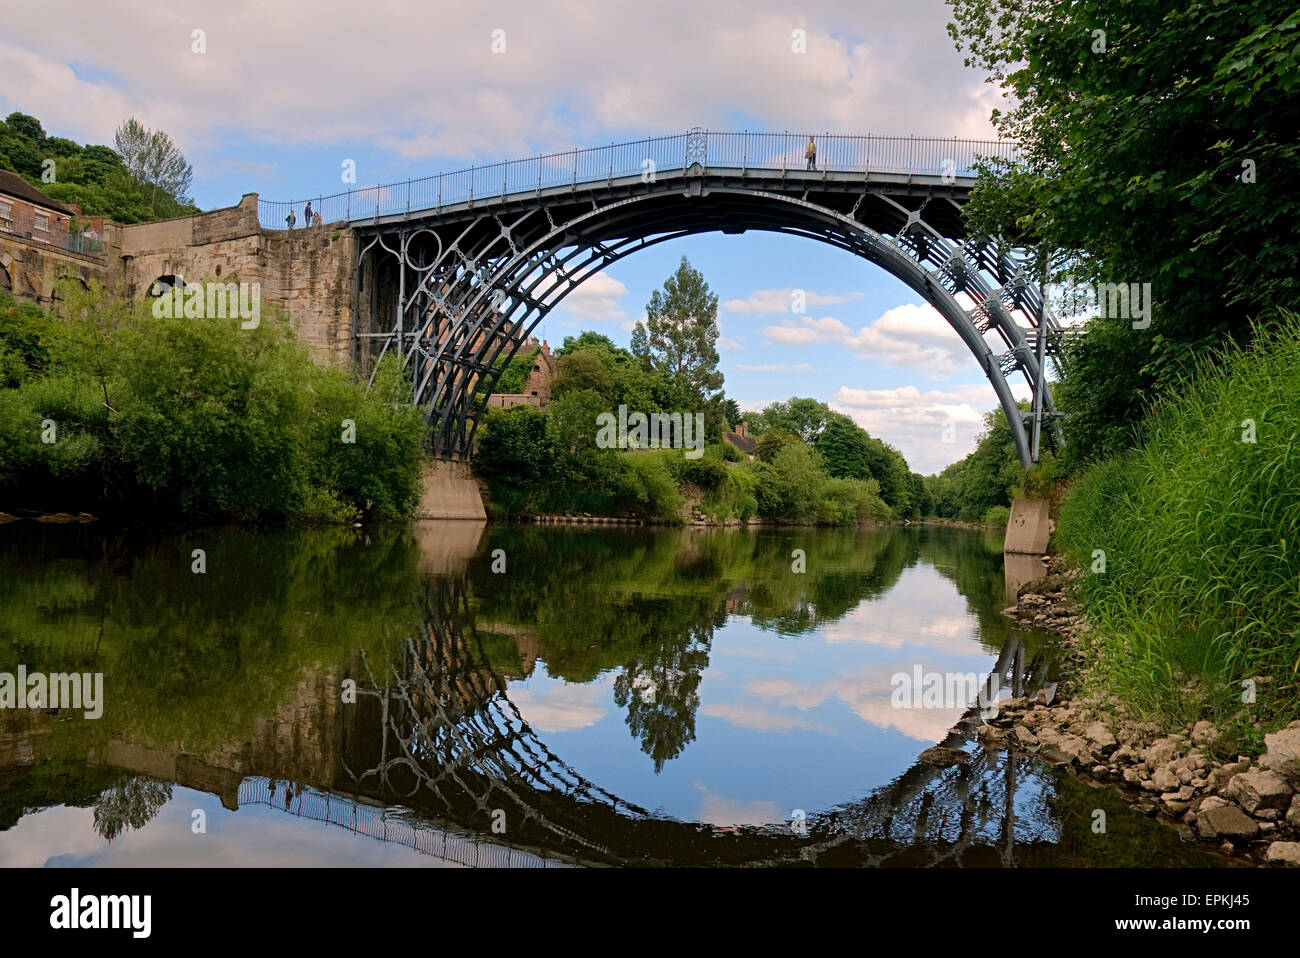 First iron bridge in the world was built by Abraham Darby III River Severn at Ironbridge Shropshire England UK Europe - Stock Image